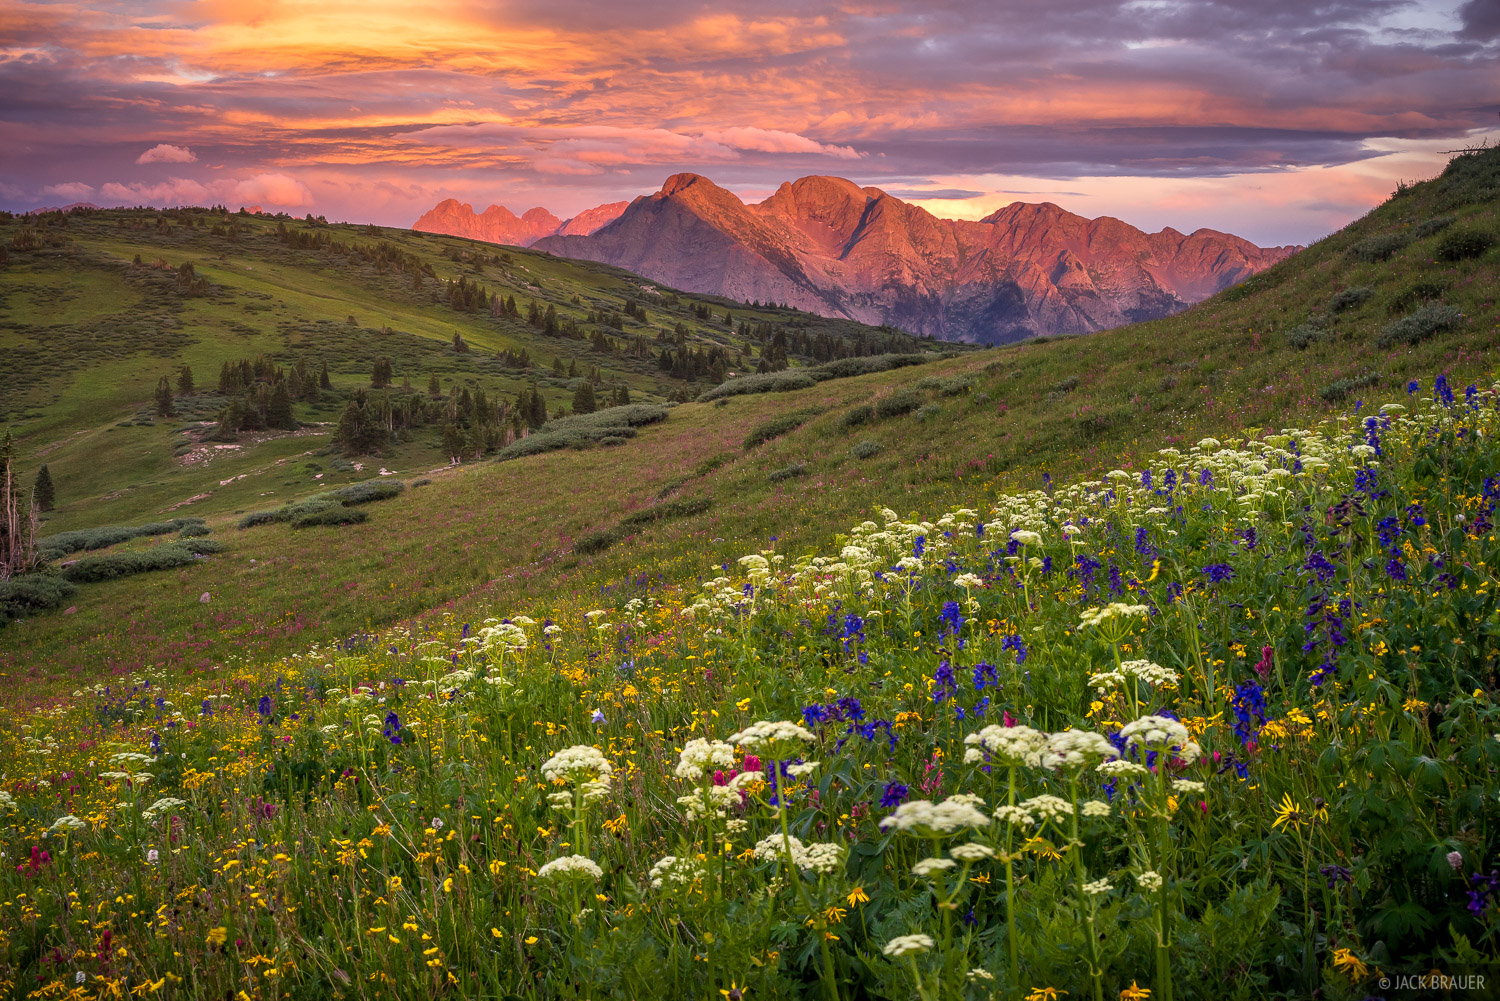 Wildflowers and a spectacular sunset above North Twilight and Twilight Peaks of the West Needle Mountains between Silverton and...